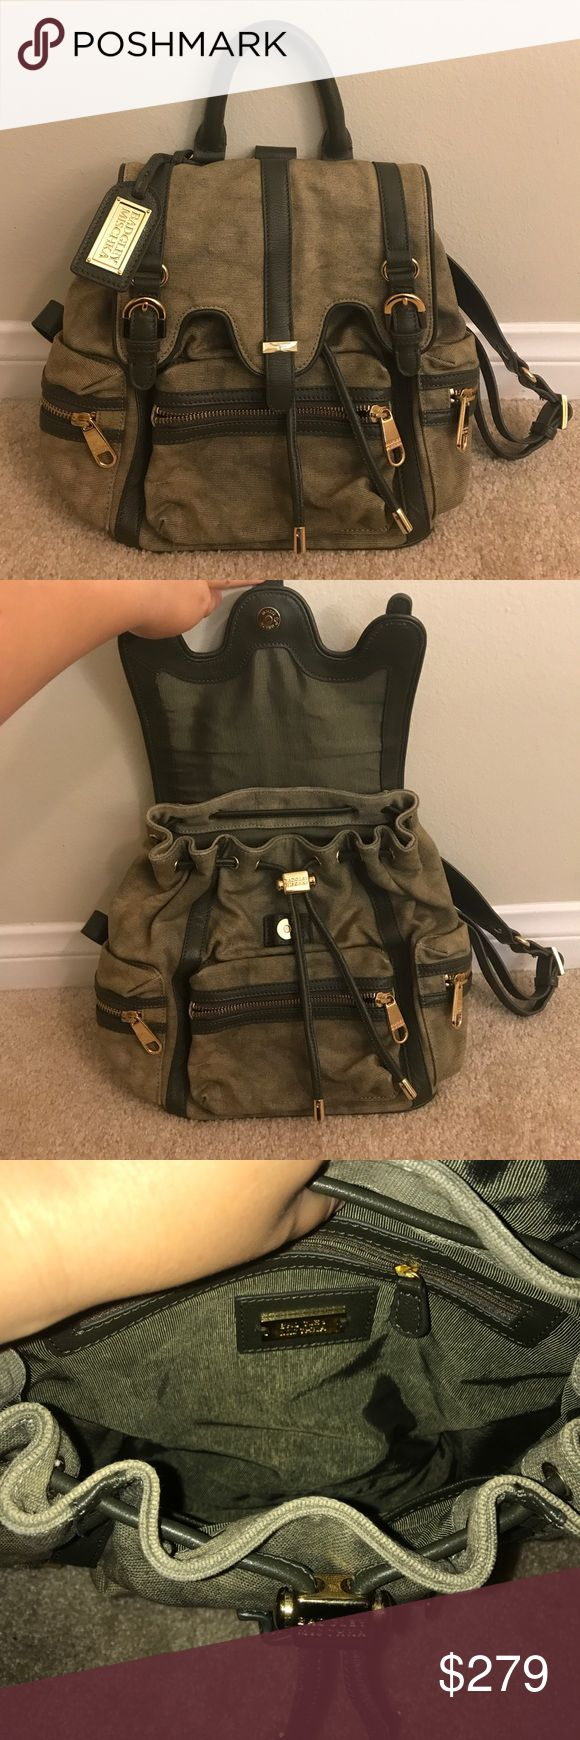 Badgley Mischka Backpack 100% Authentic Badgley Mischka Backpack. Price is firm on Posh. Hardly ever used it. No dust bag/box/receipt. Purchased it several years ago from Nordstrom's Half Yearly Sale. Feel free to ask any questions! (Selling for less on Ⓜ️) Badgley Mischka Bags Backpacks